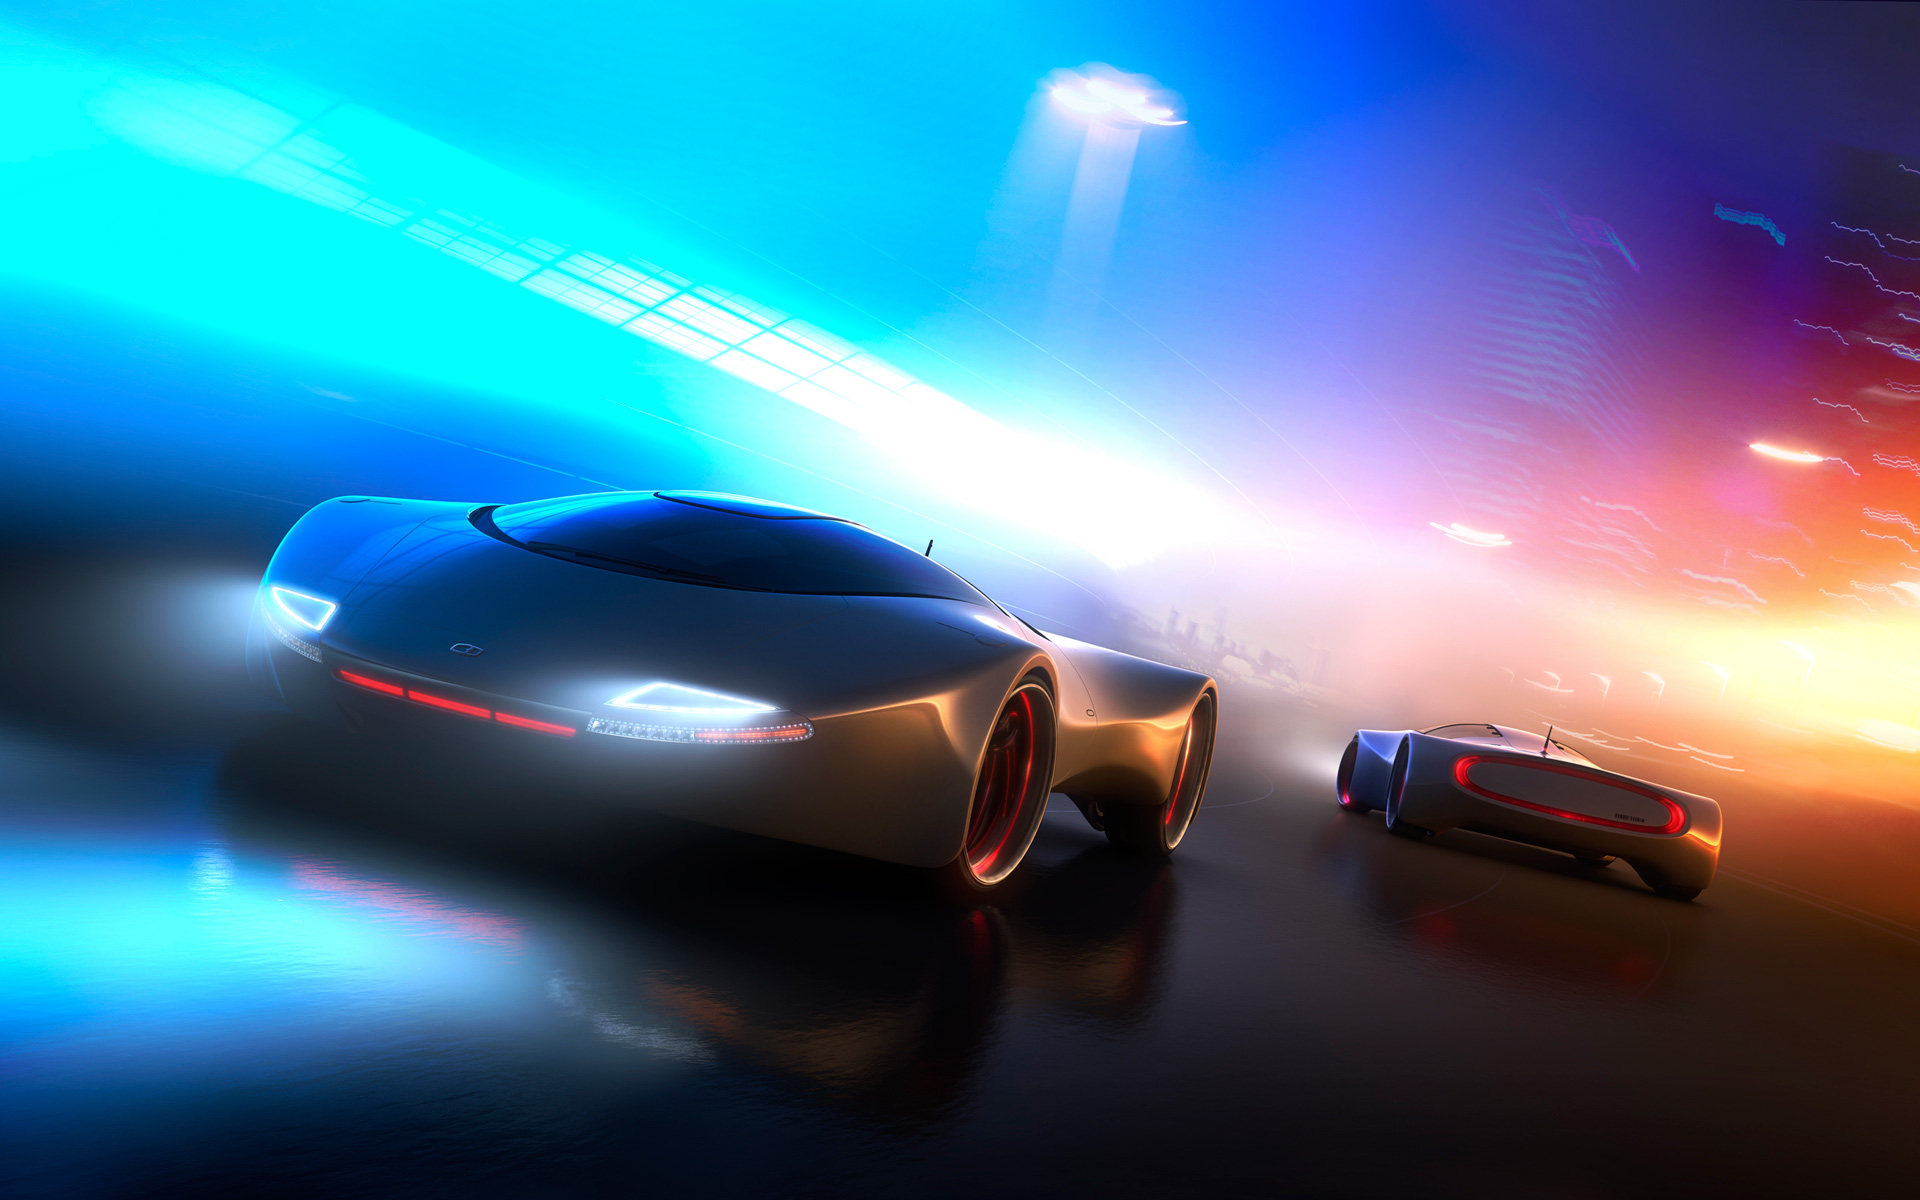 HD Wallpapers For Windows 8 Concept Car 2020